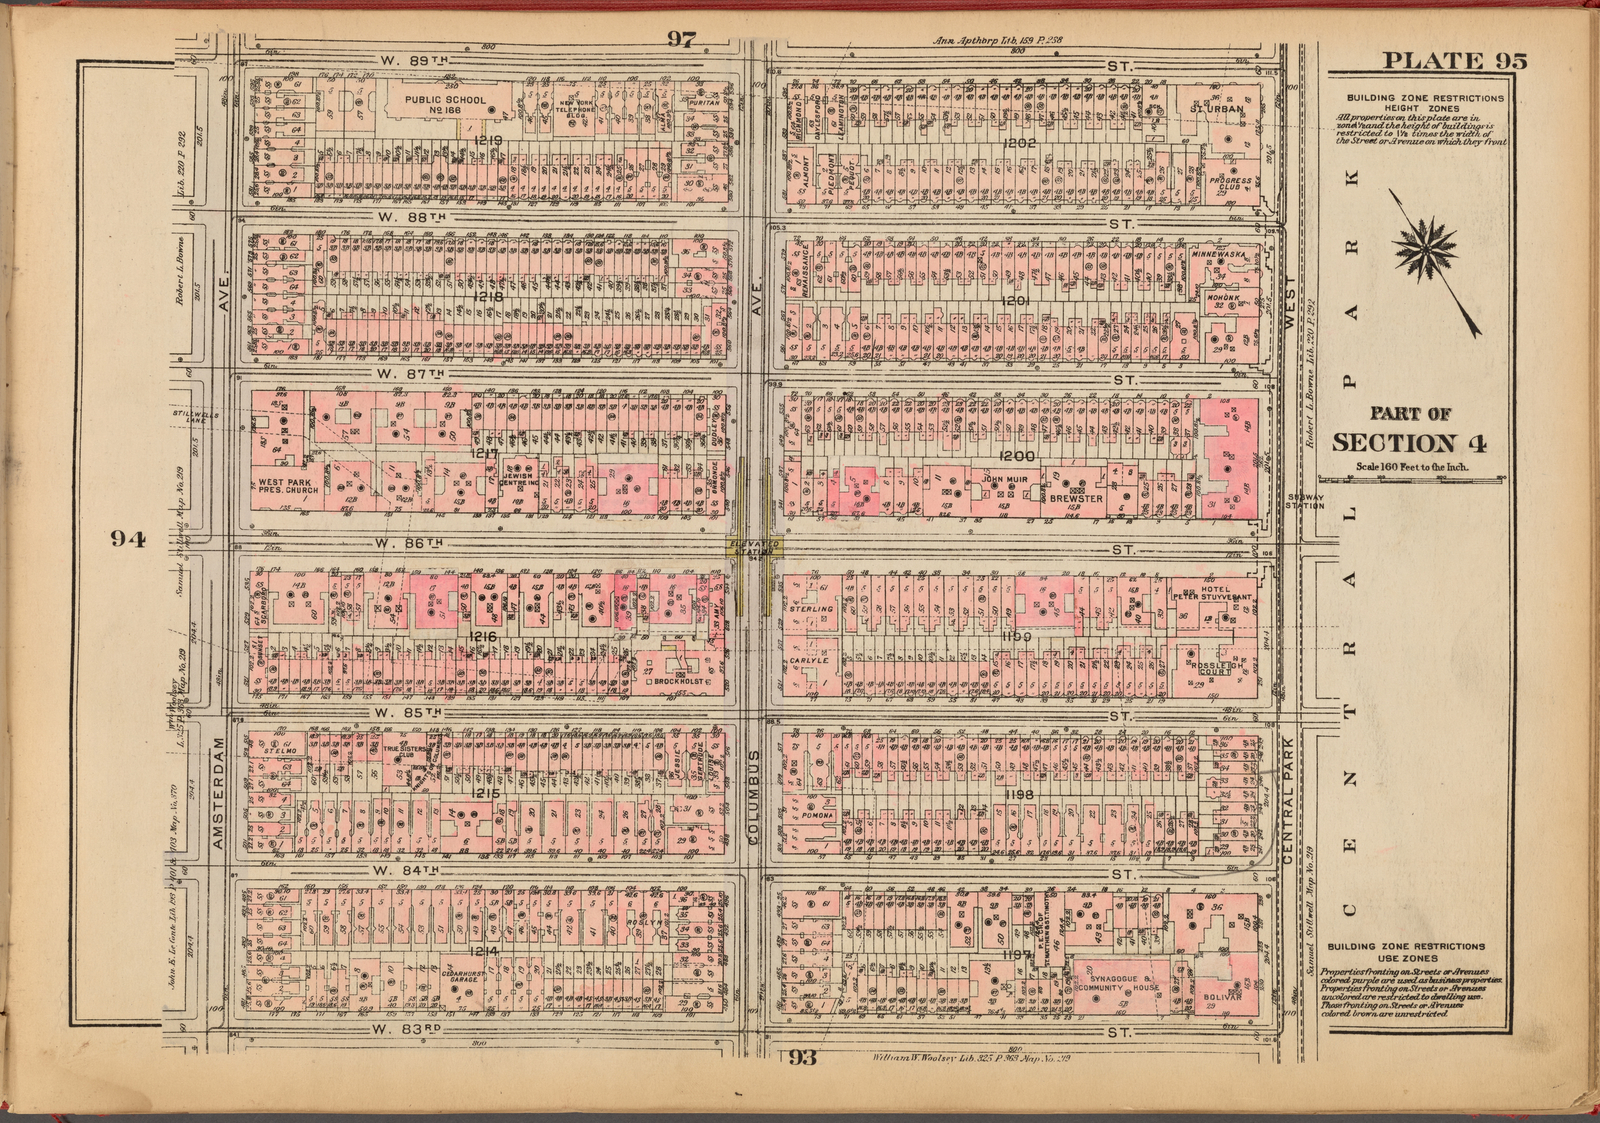 Plate 95, Part of Section 4: [Bounded by W. 89th Street, Central Park West, W. 83rd Street and Amsterdam Avenue]